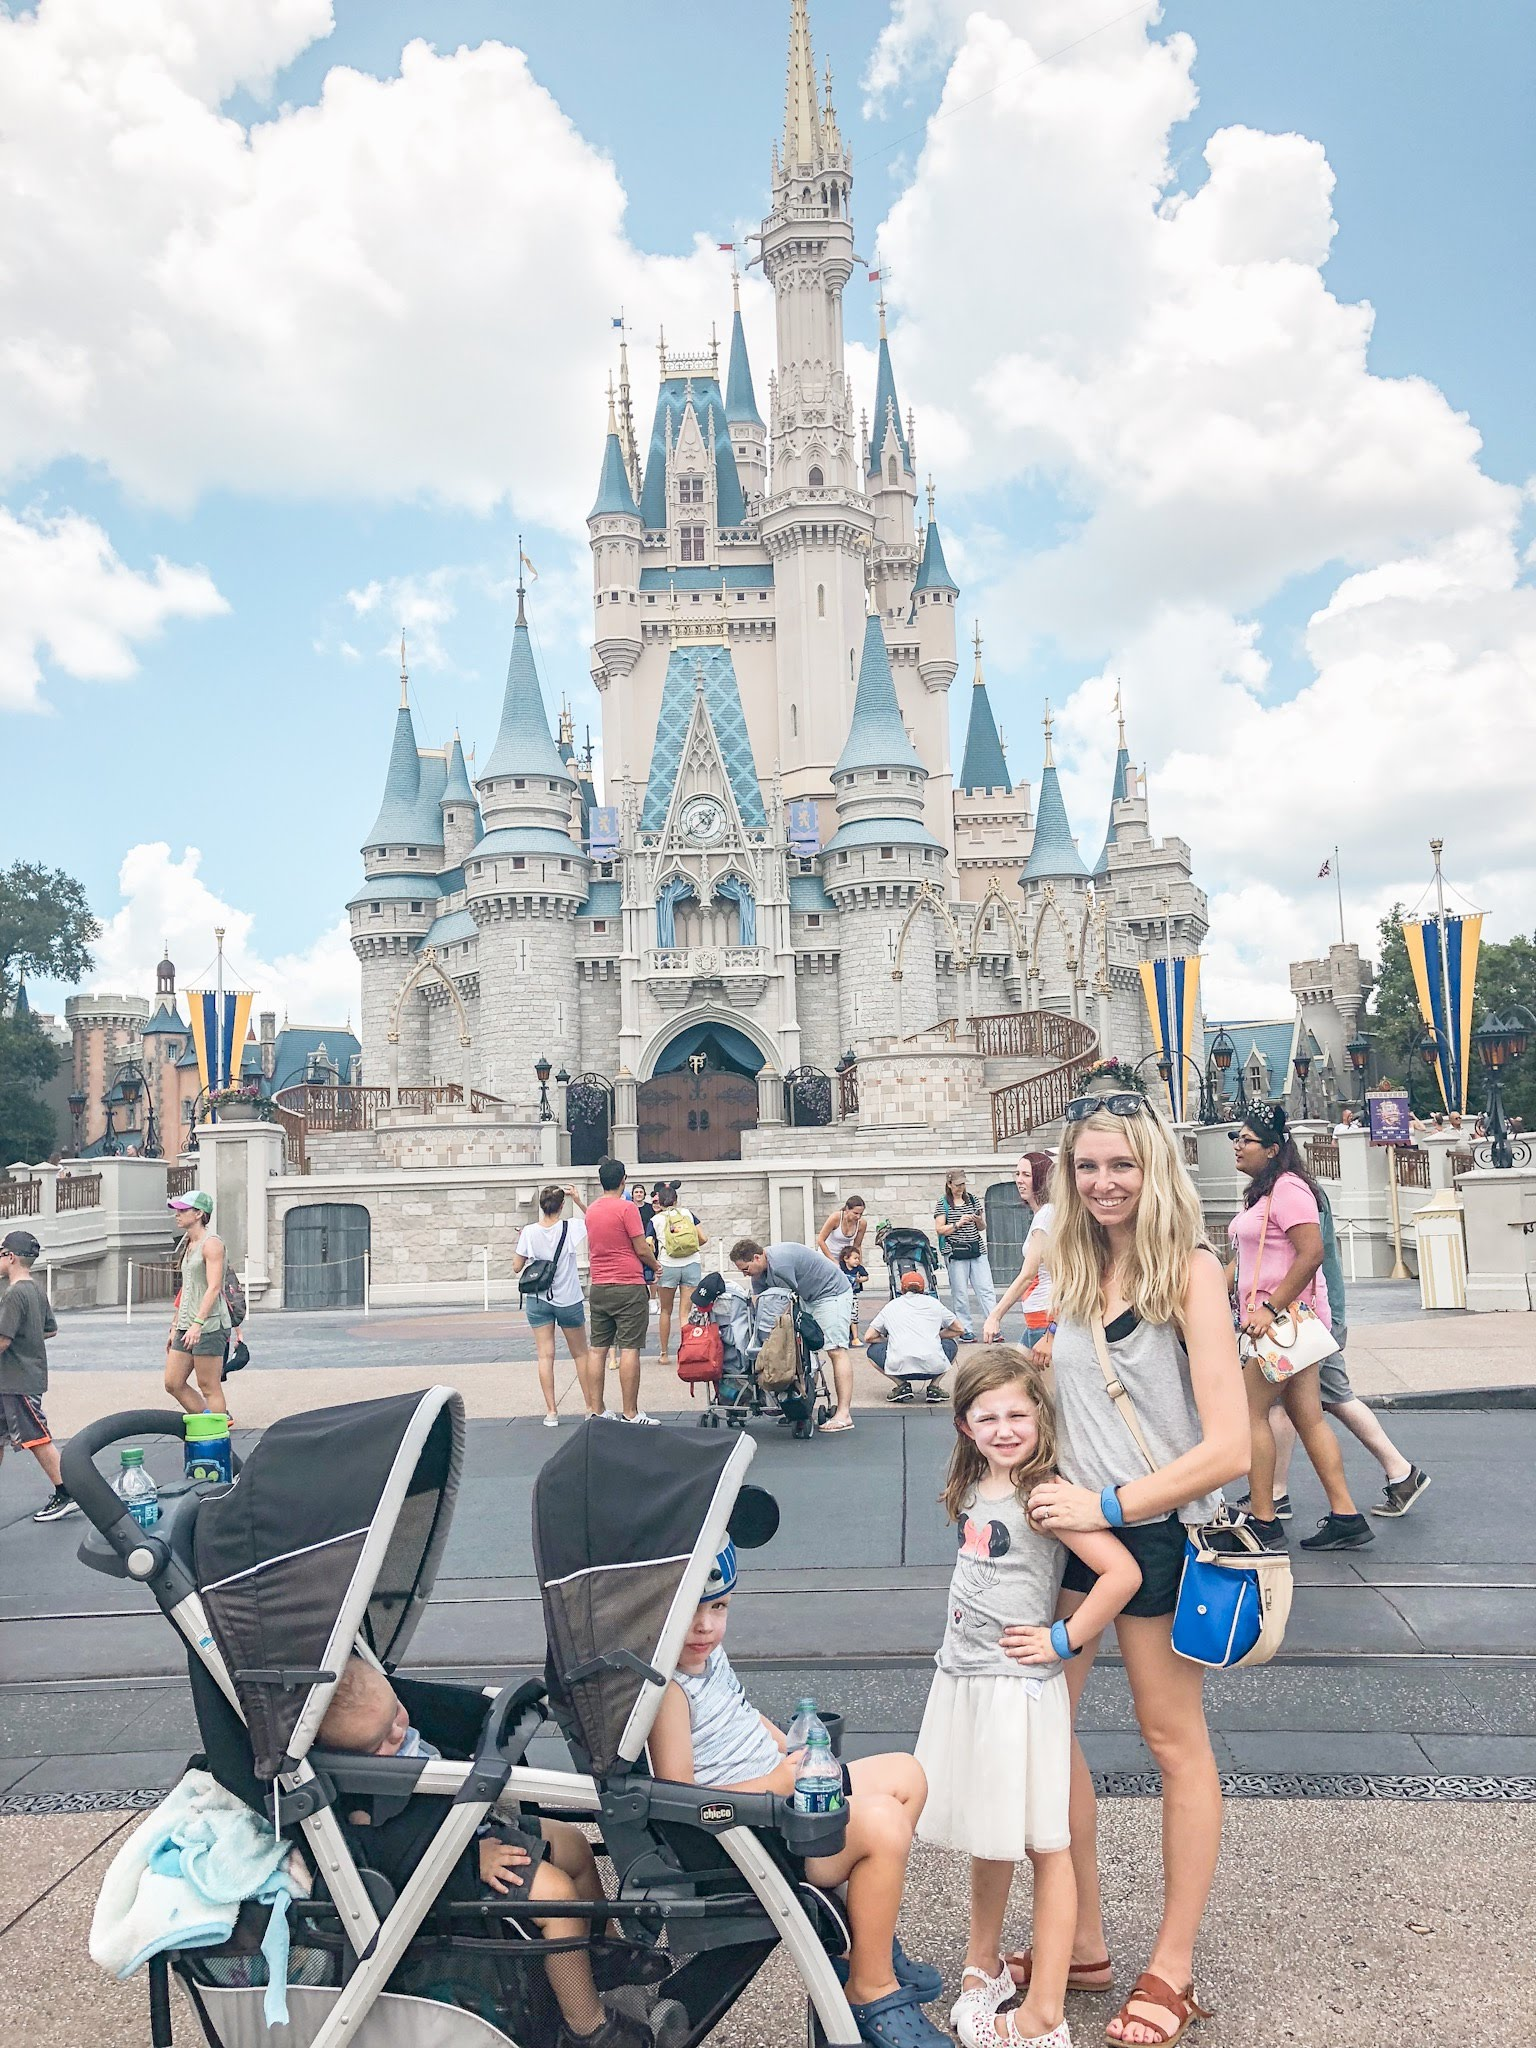 bringing a stroller to Disney